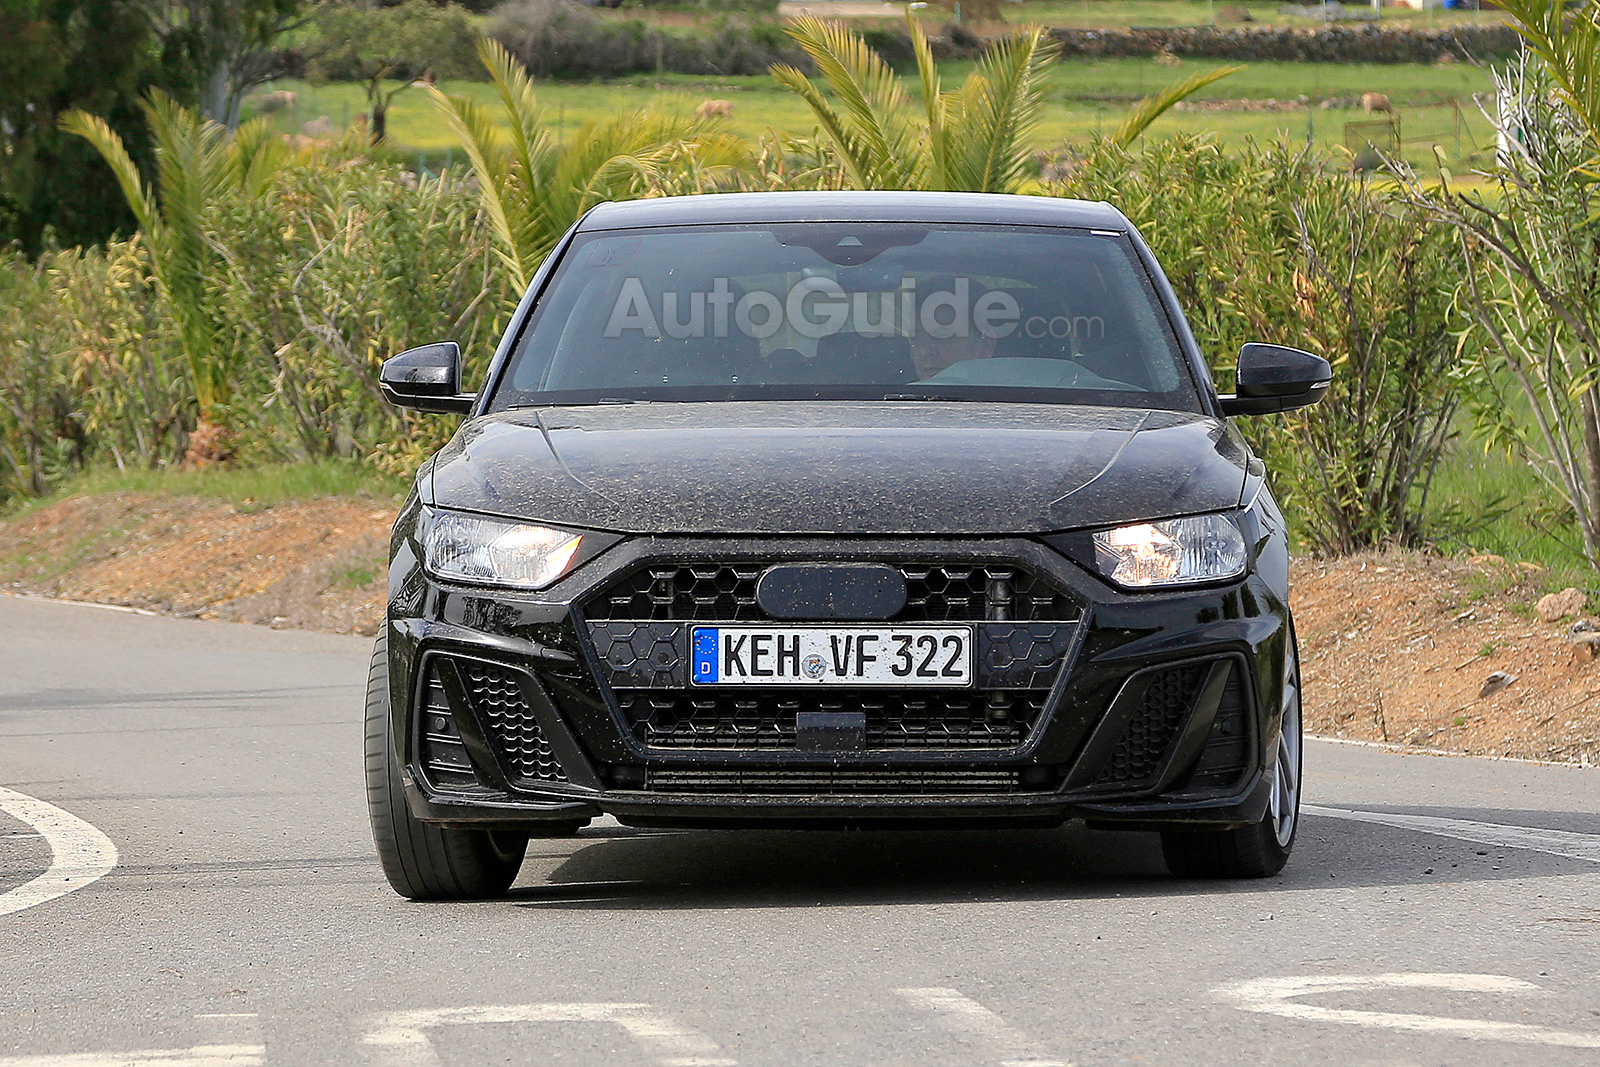 Used Audi A1 >> 2019 Audi A1 Ditches its Camouflage for Spy Photographers » AutoGuide.com News